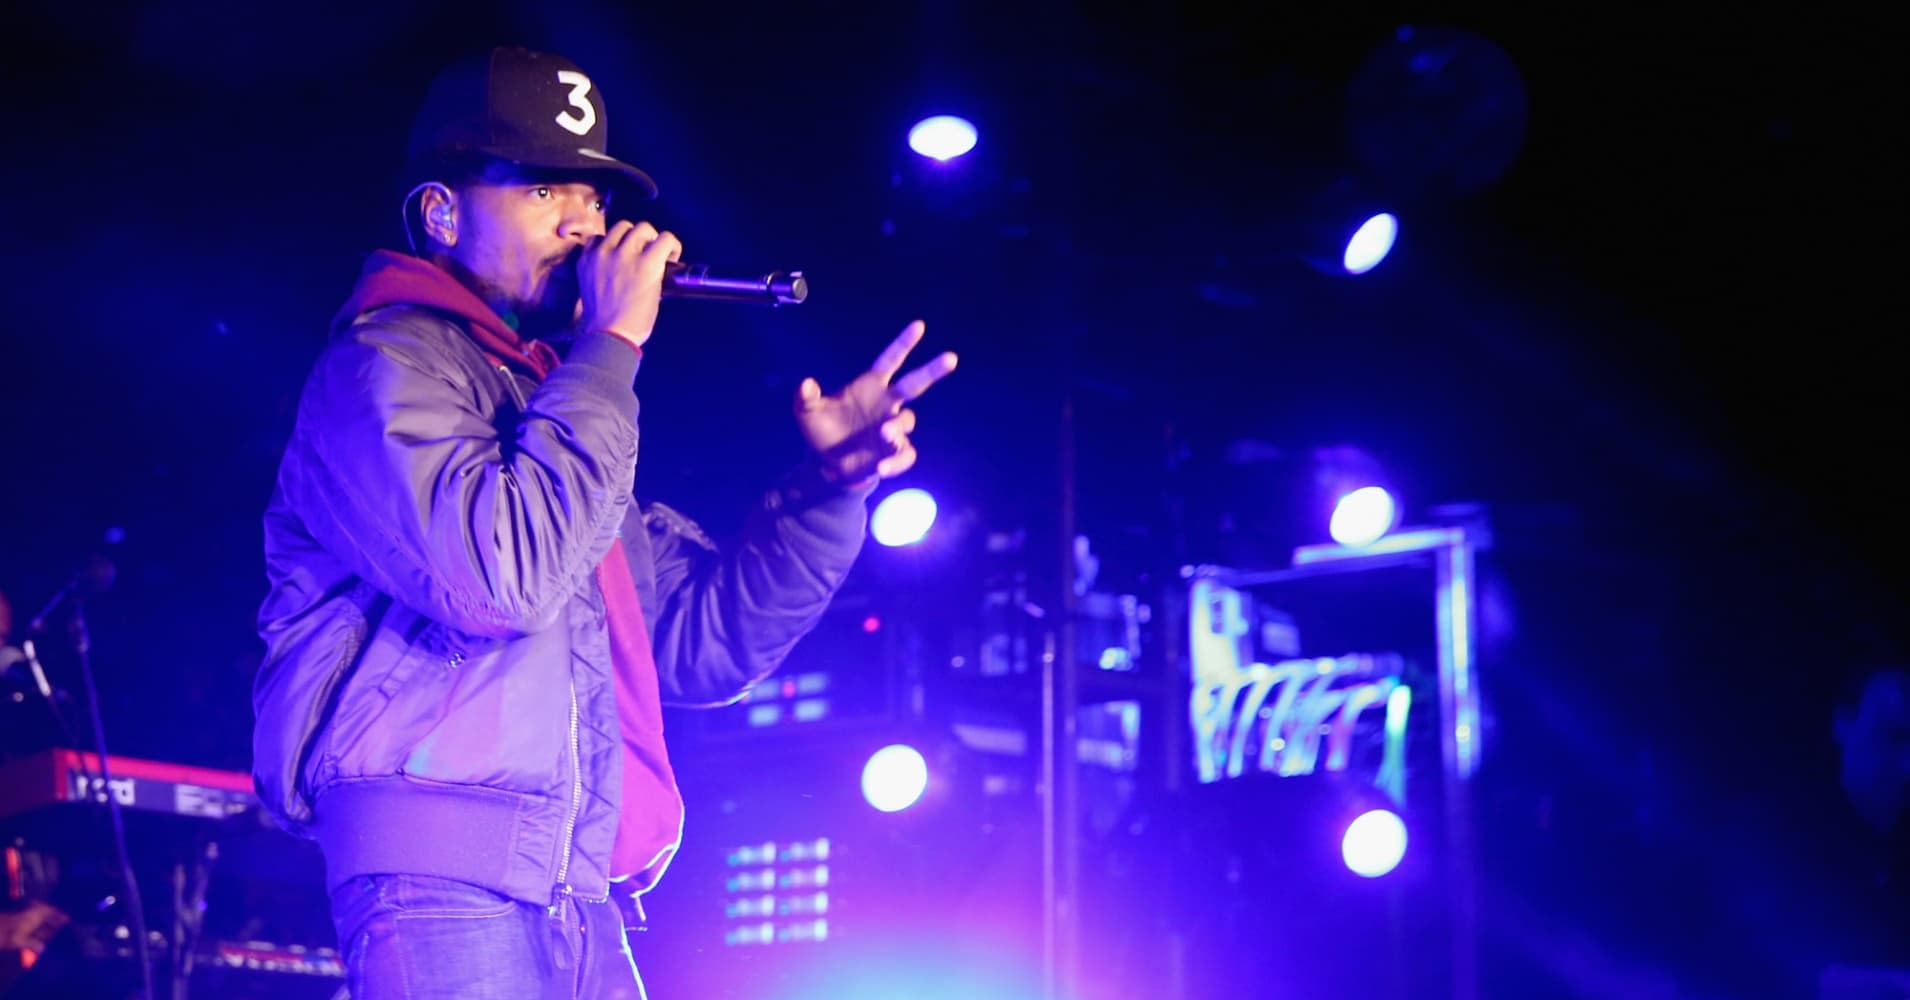 Chance The Rapper performs onstage during Take-Two's Annual E3 Kickoff Party at Cecconi's Restaurant on June 13, 2016 in Los Angeles, California.